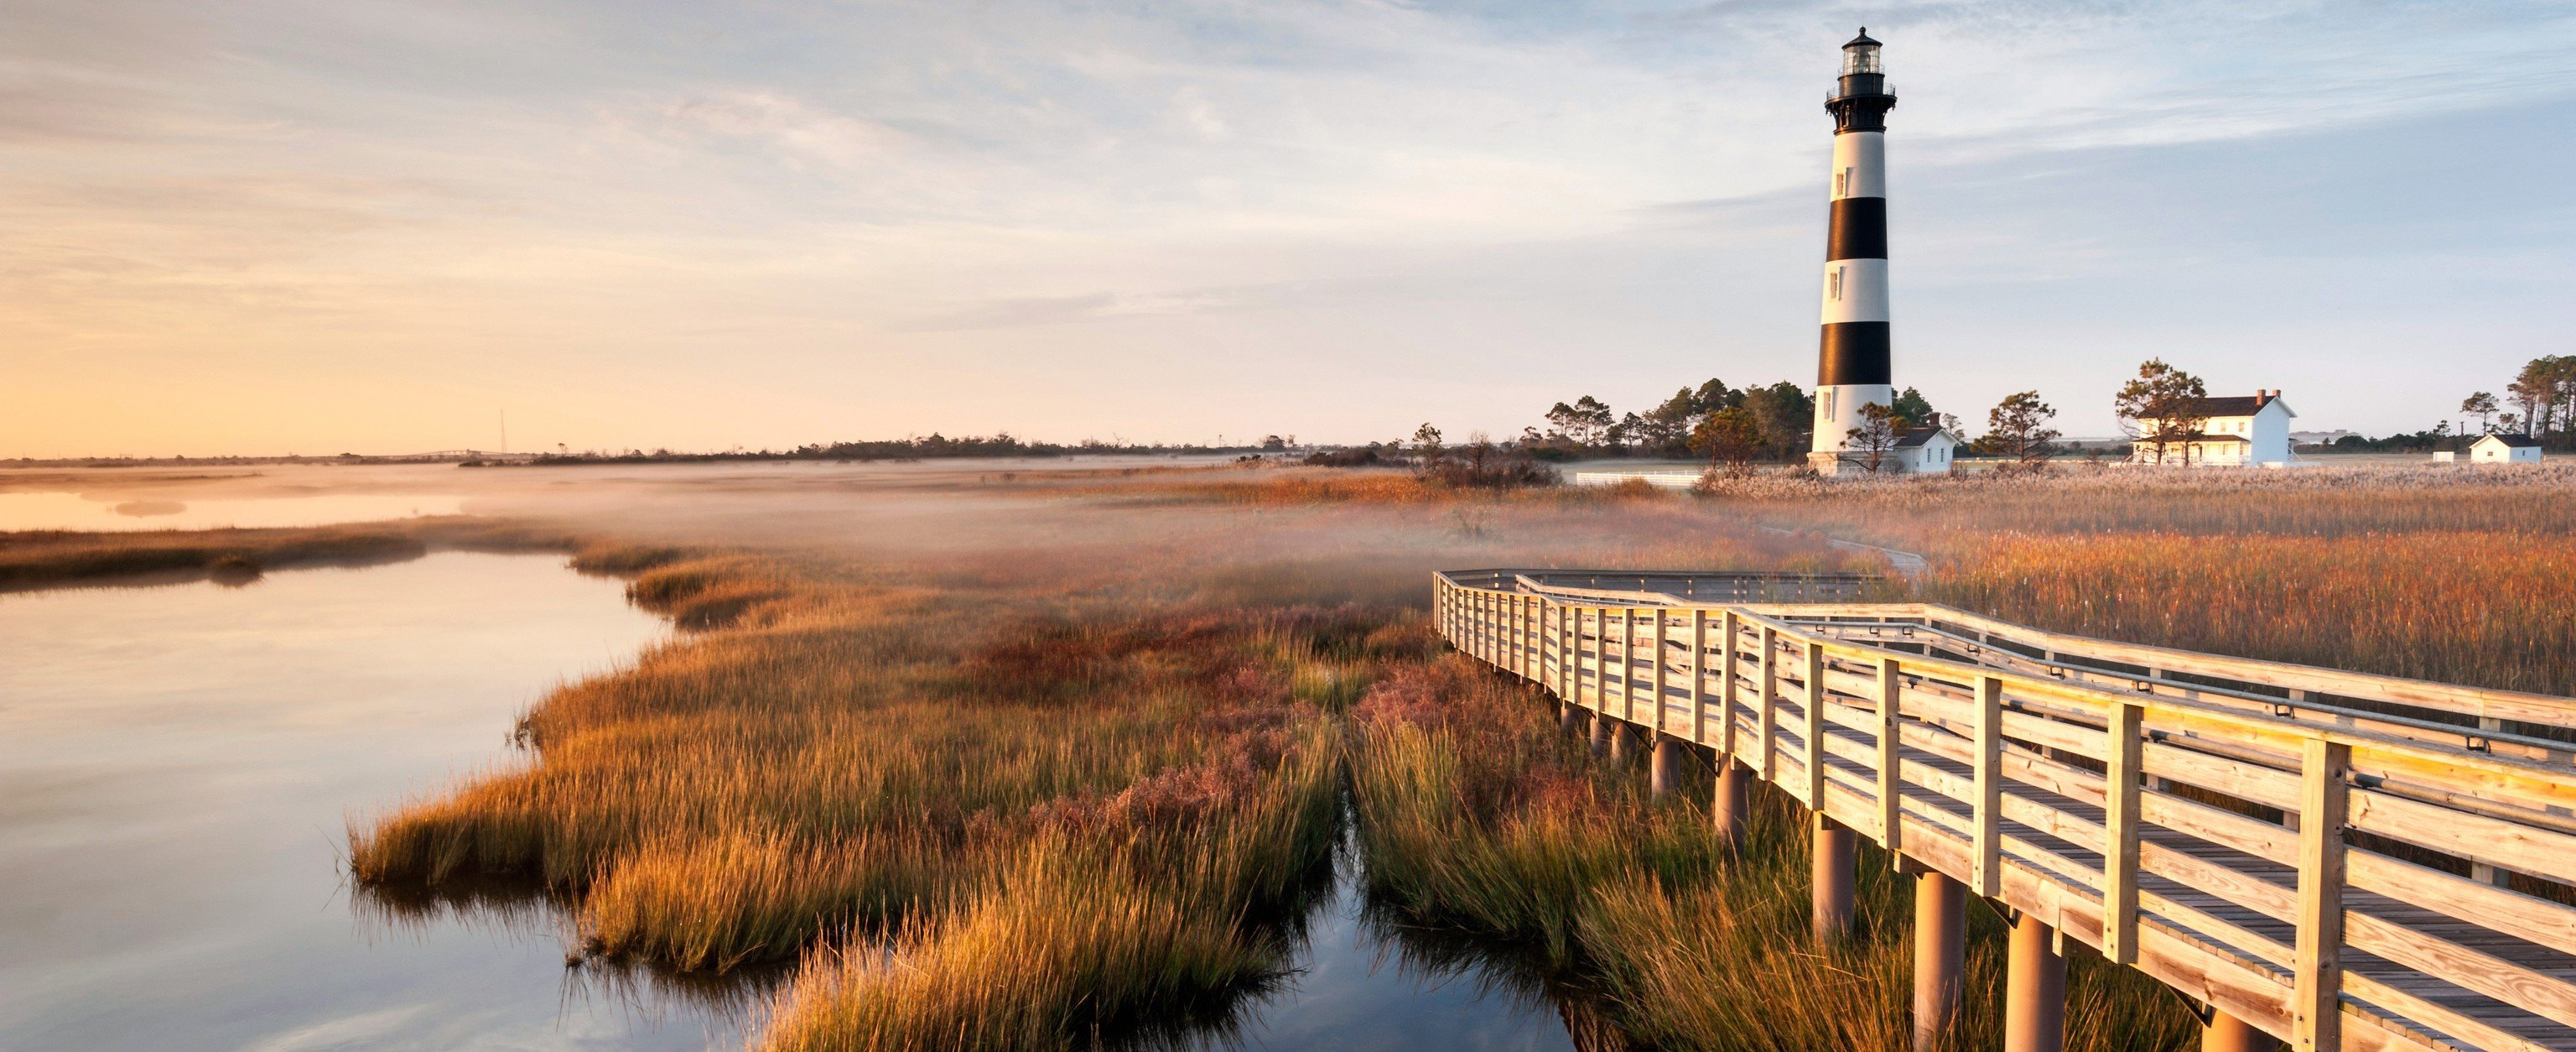 Beach sky outdoor water River reflection shore tower horizon Coast morning Sea waterway landscape evening marsh dusk wetland lighthouse dawn panorama overlooking